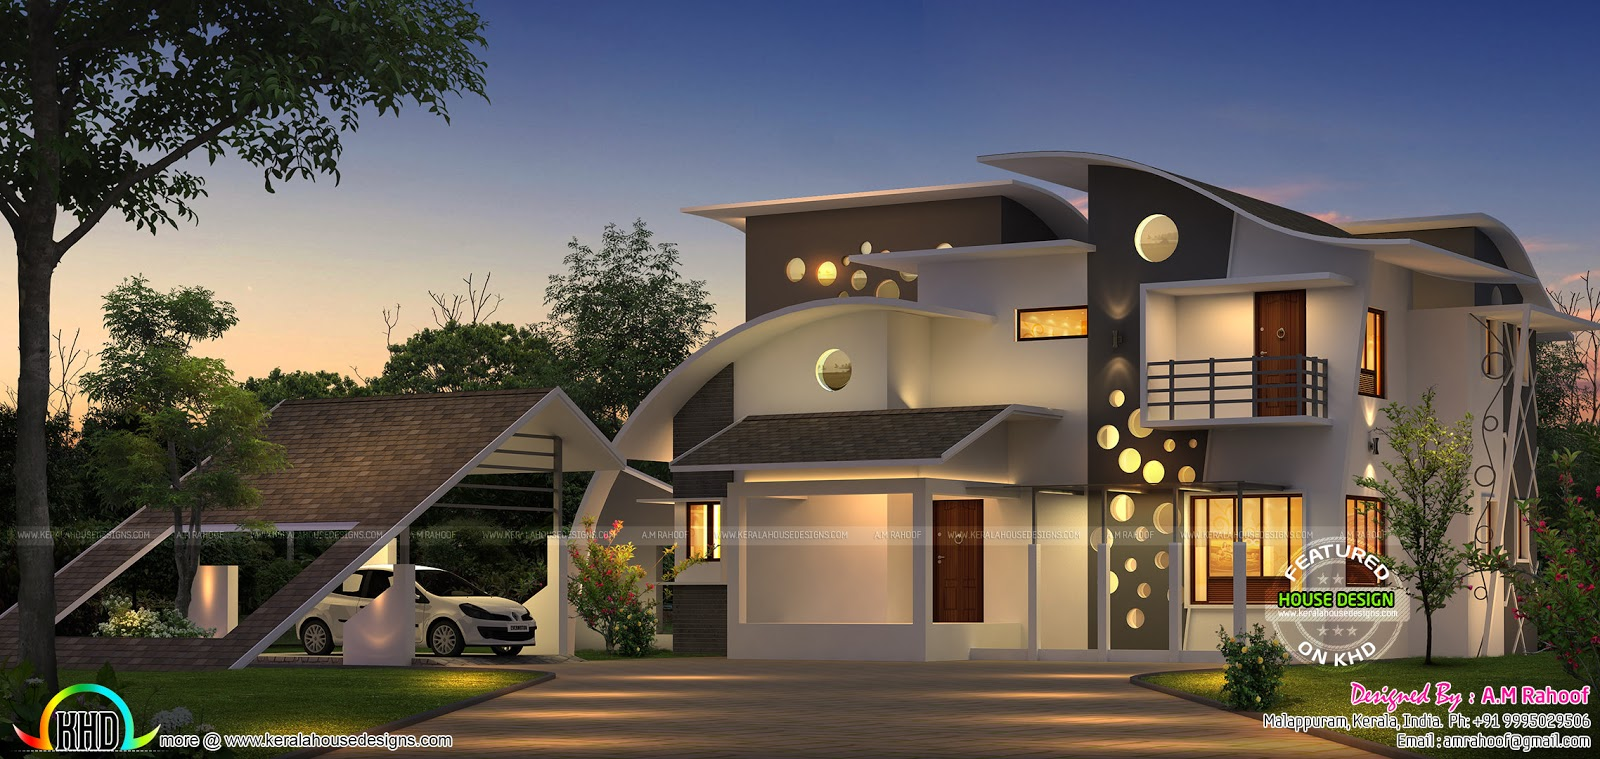 February 2016 Kerala Home Design And Floor Plans: unique house designs